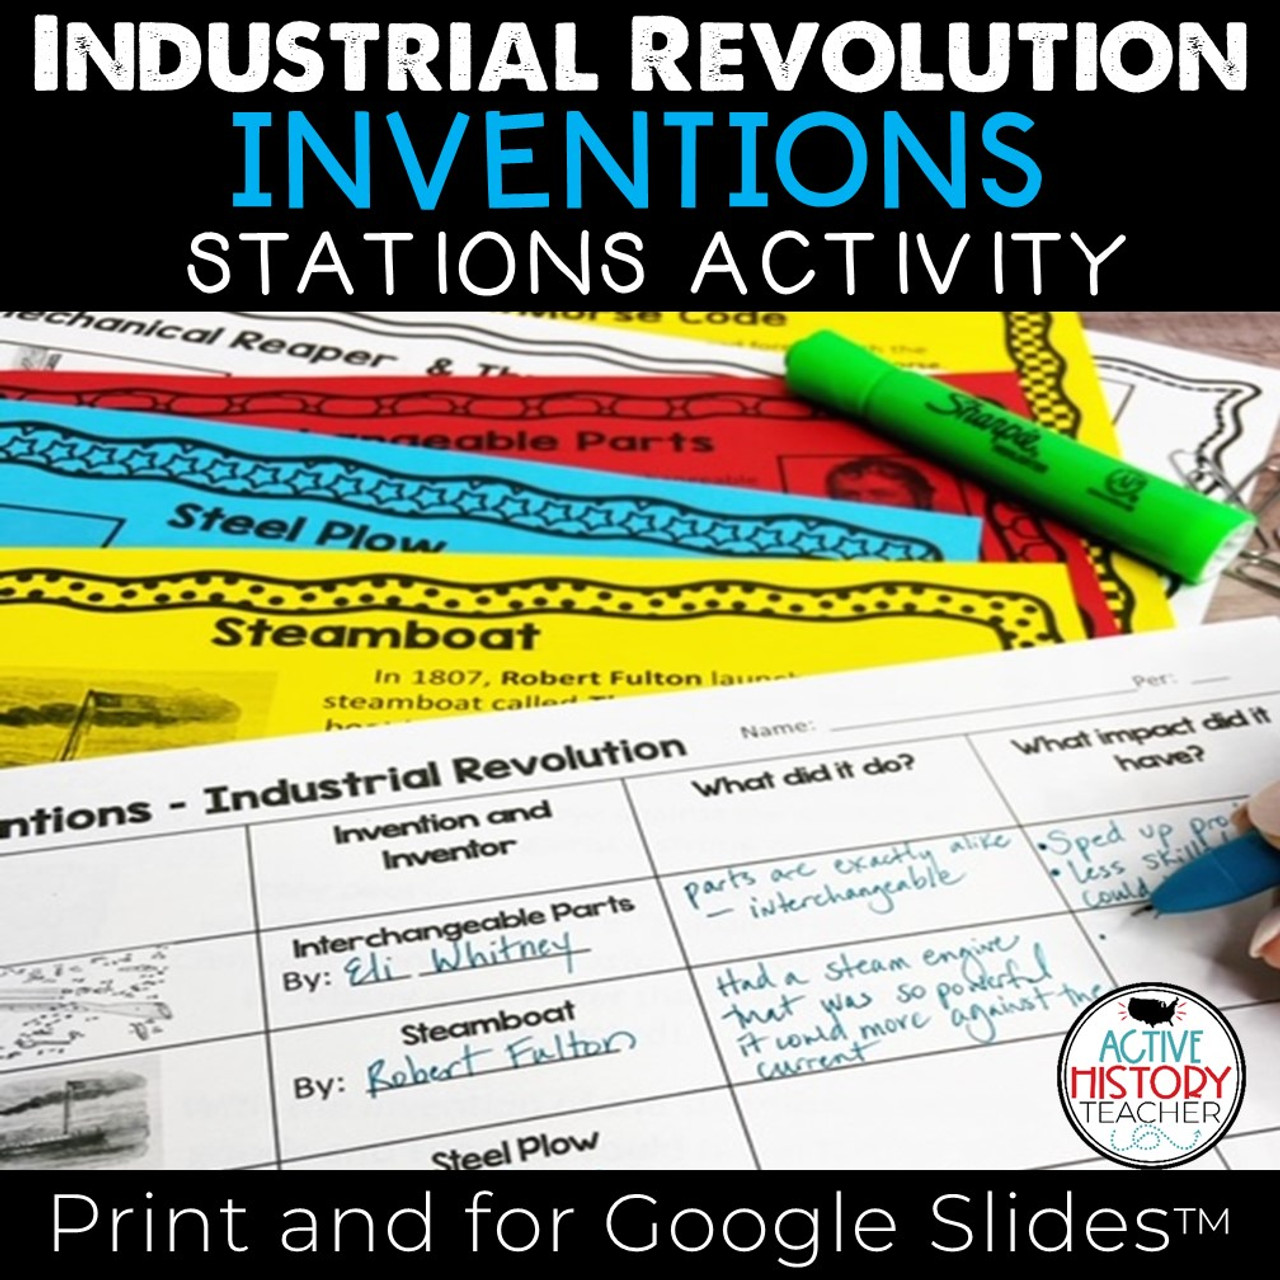 small resolution of Industrial Revolution Inventions: Stations Activity - Amped Up Learning